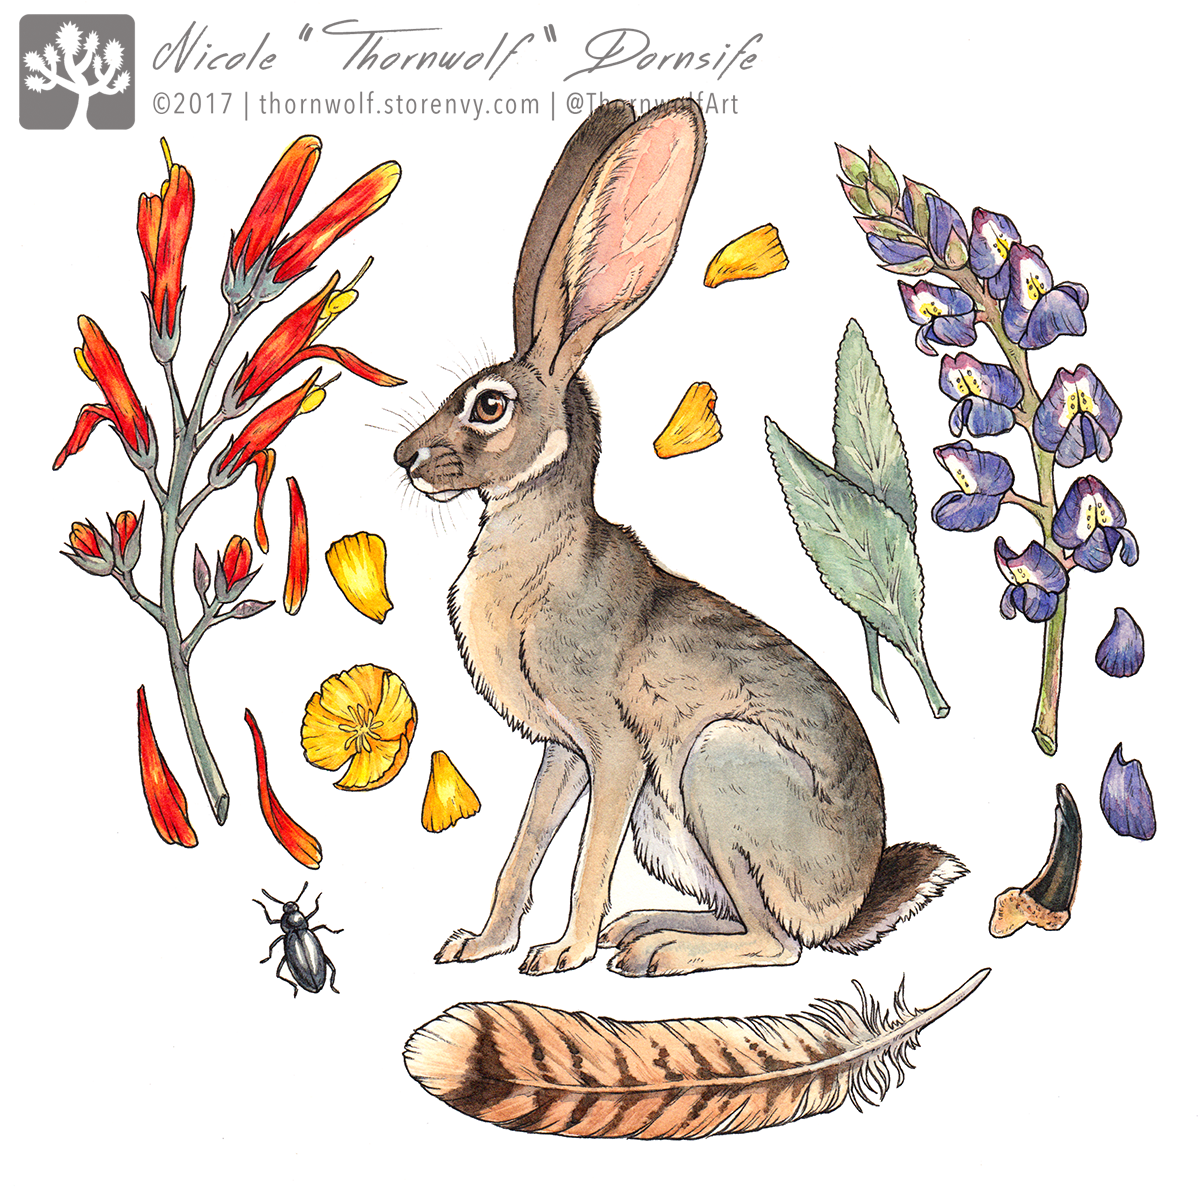 Jackrabbit surrounded by chuparosa, desert lupine, white sage, California golden poppies, coyote claw, and red tailed hawk feather.